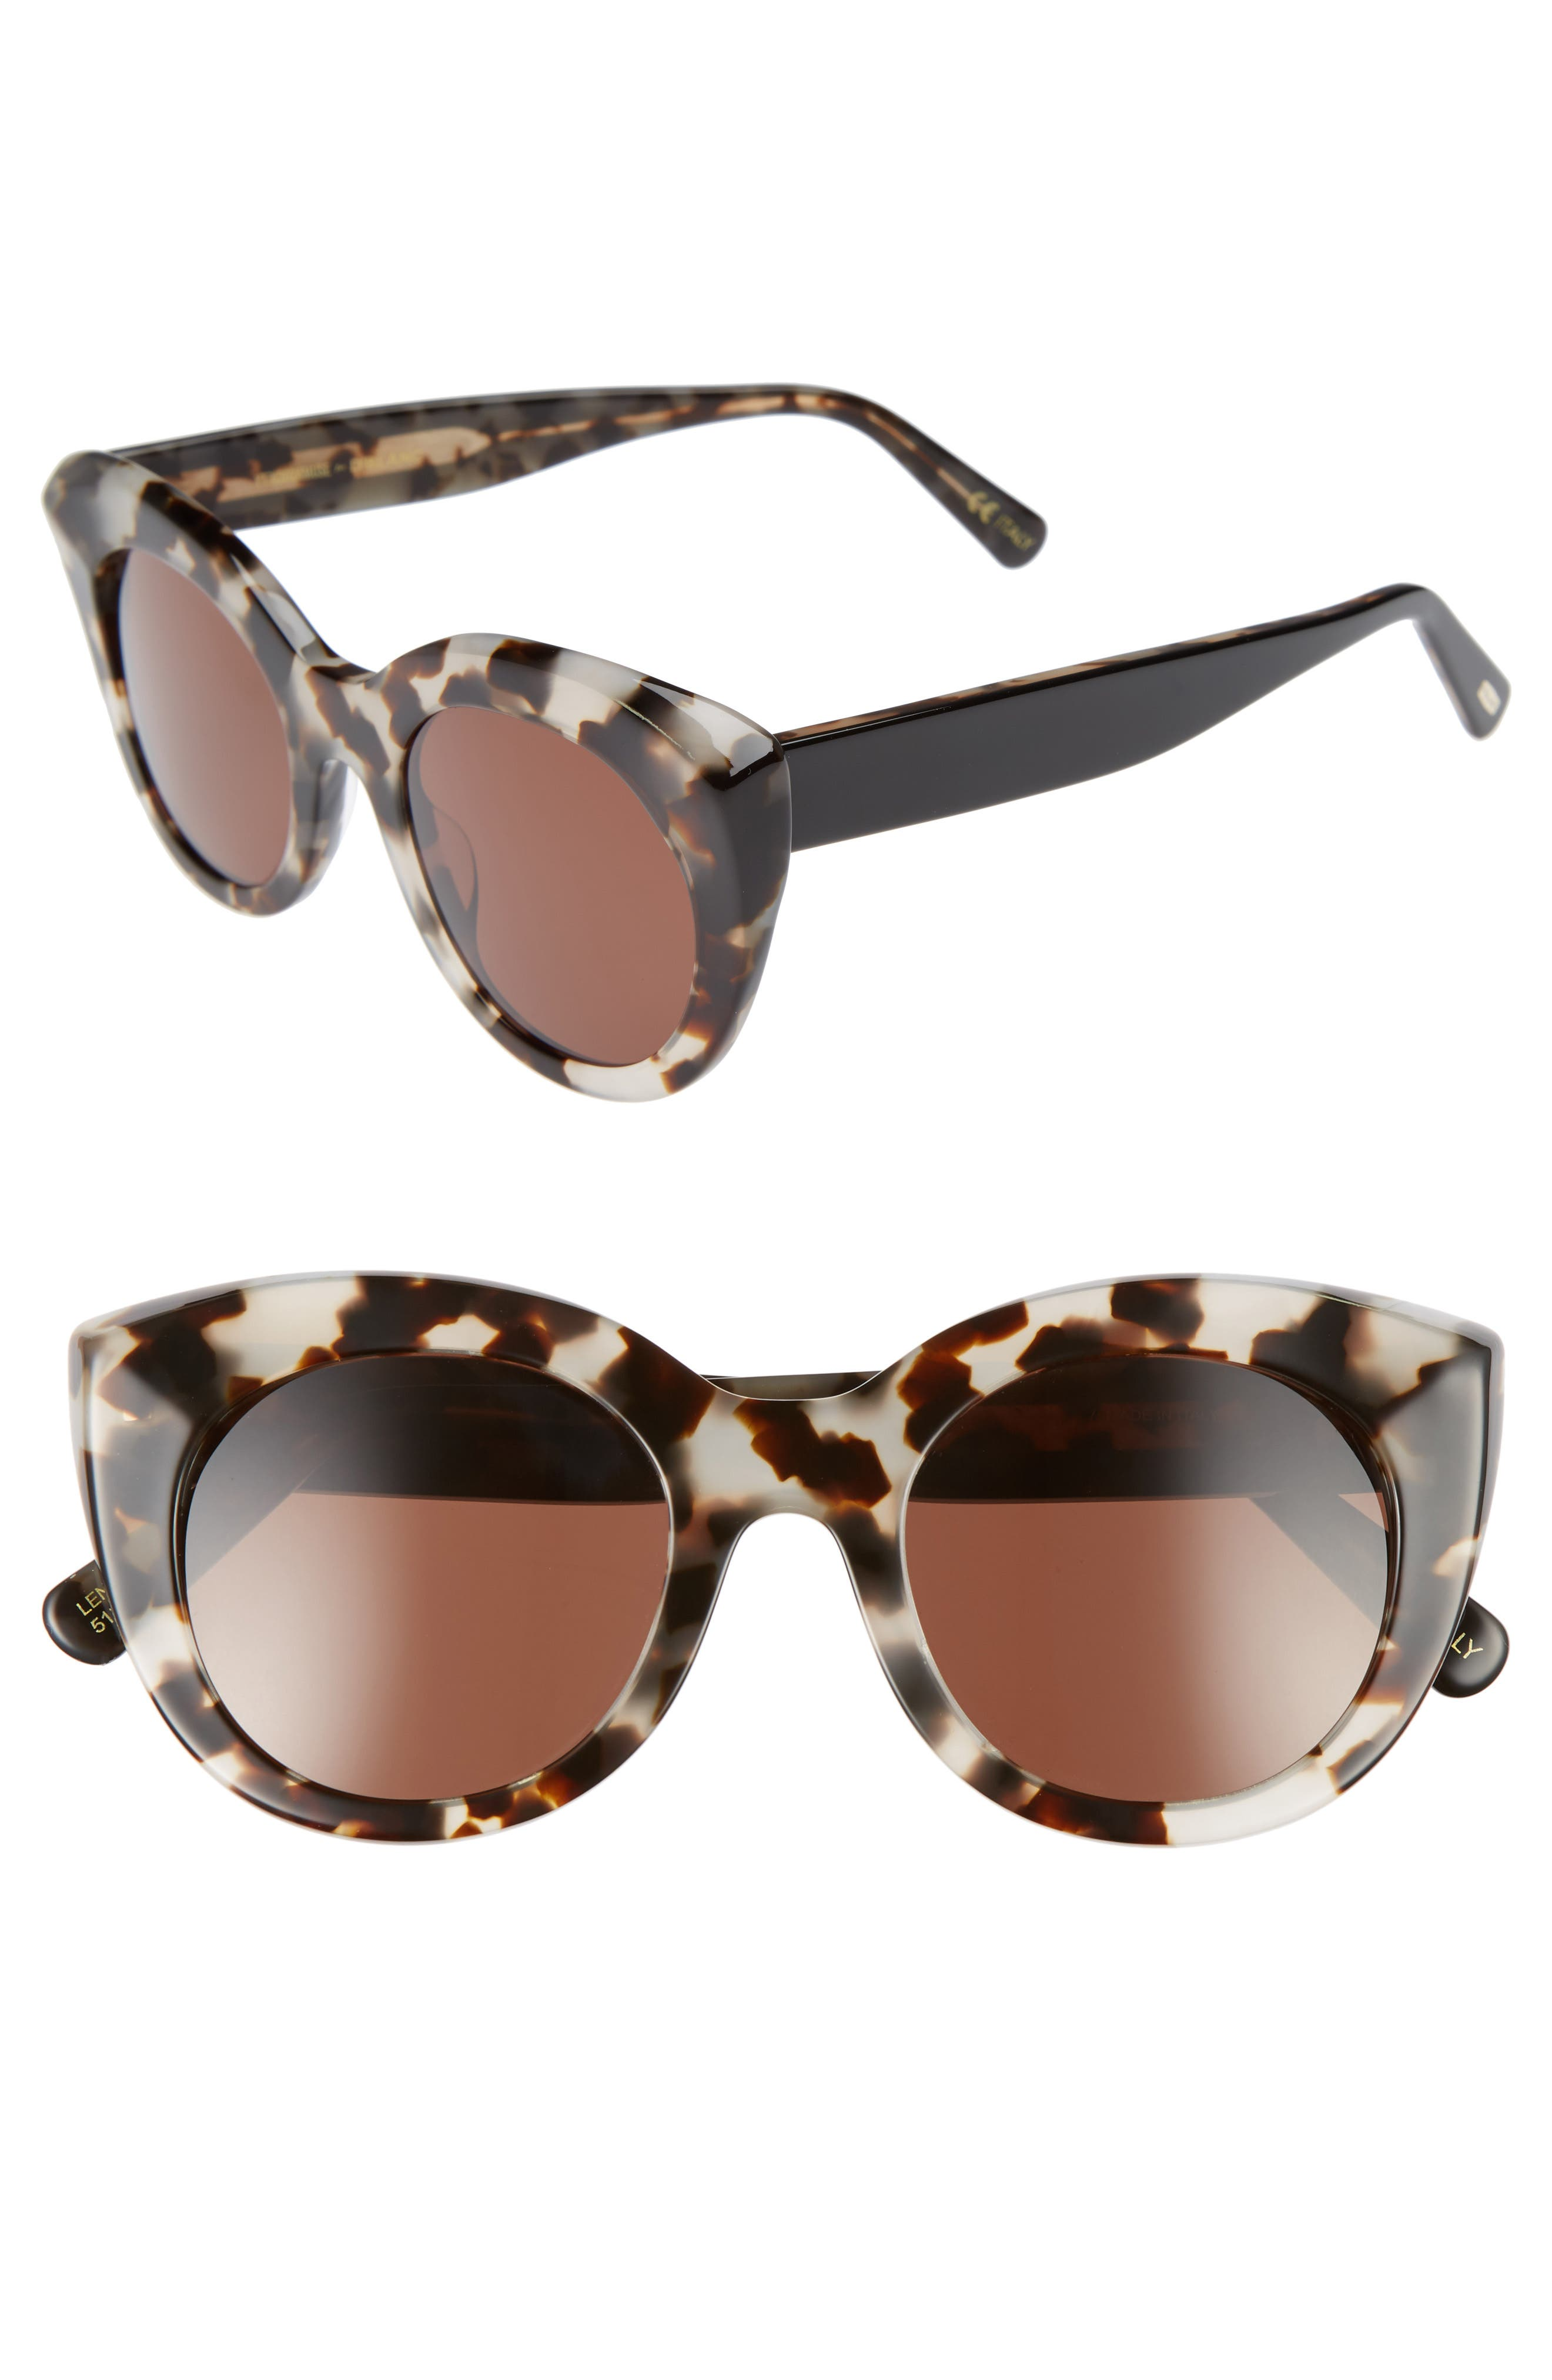 Main Image - D'BLANC Modern Lover 49mm Cat-Eye Sunglasses